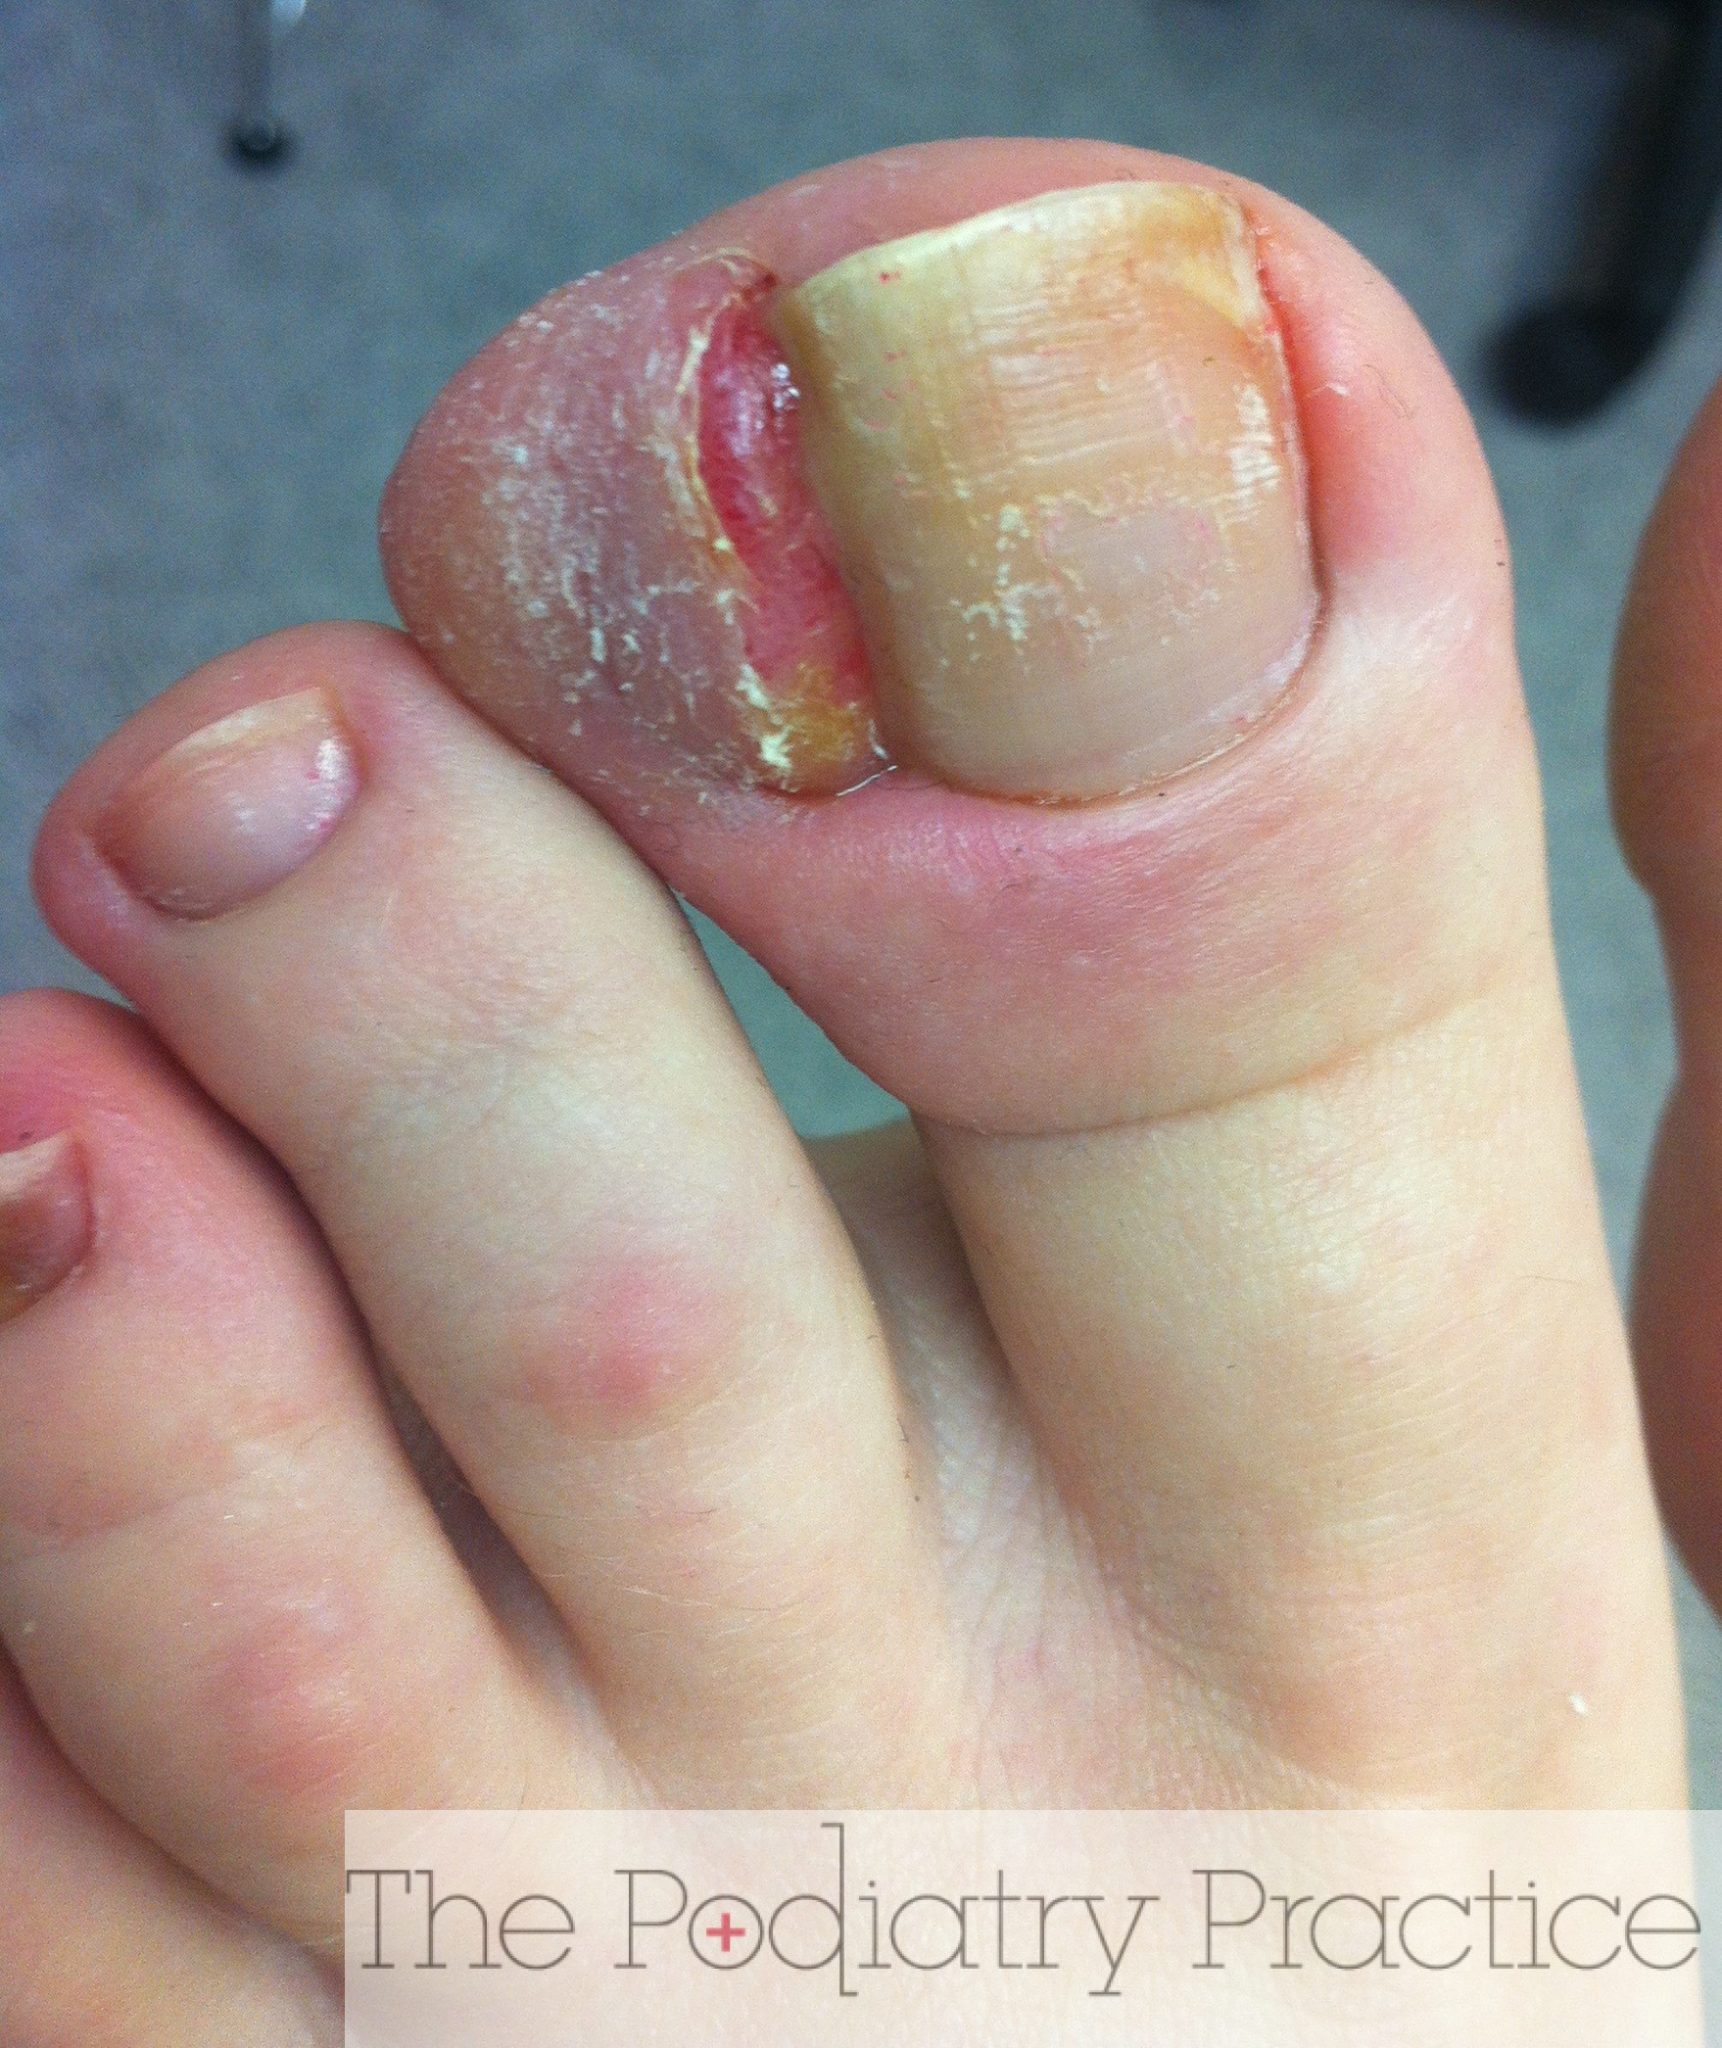 Wow, this is a severe ingrown toenail! - The Podiatry Practice